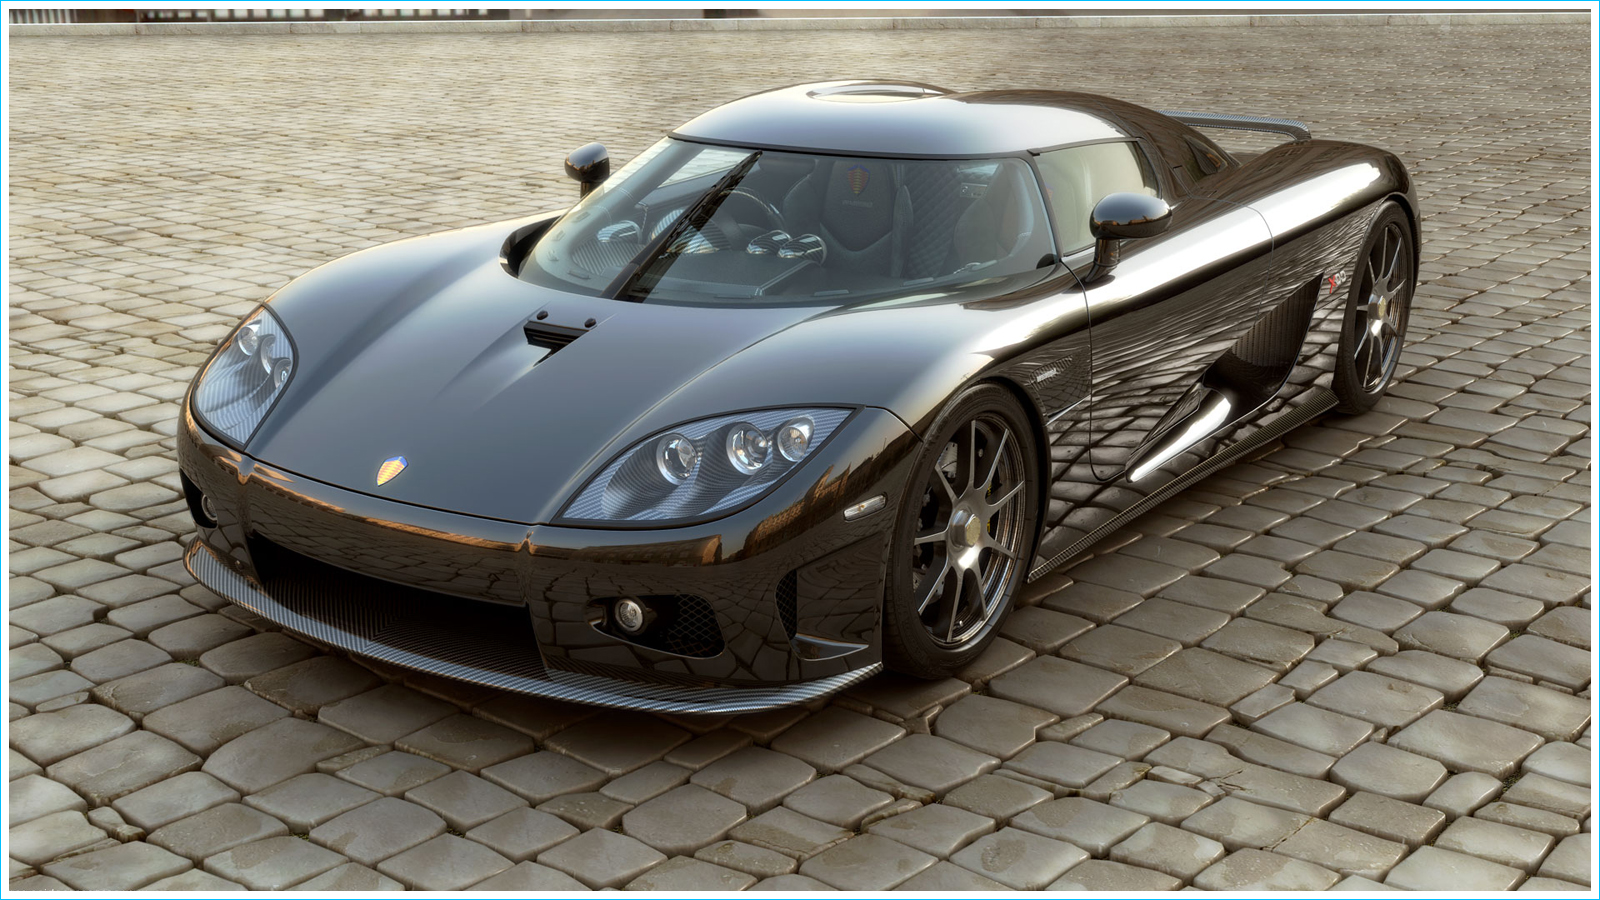 mod le populaire de voiture koenigsegg. Black Bedroom Furniture Sets. Home Design Ideas